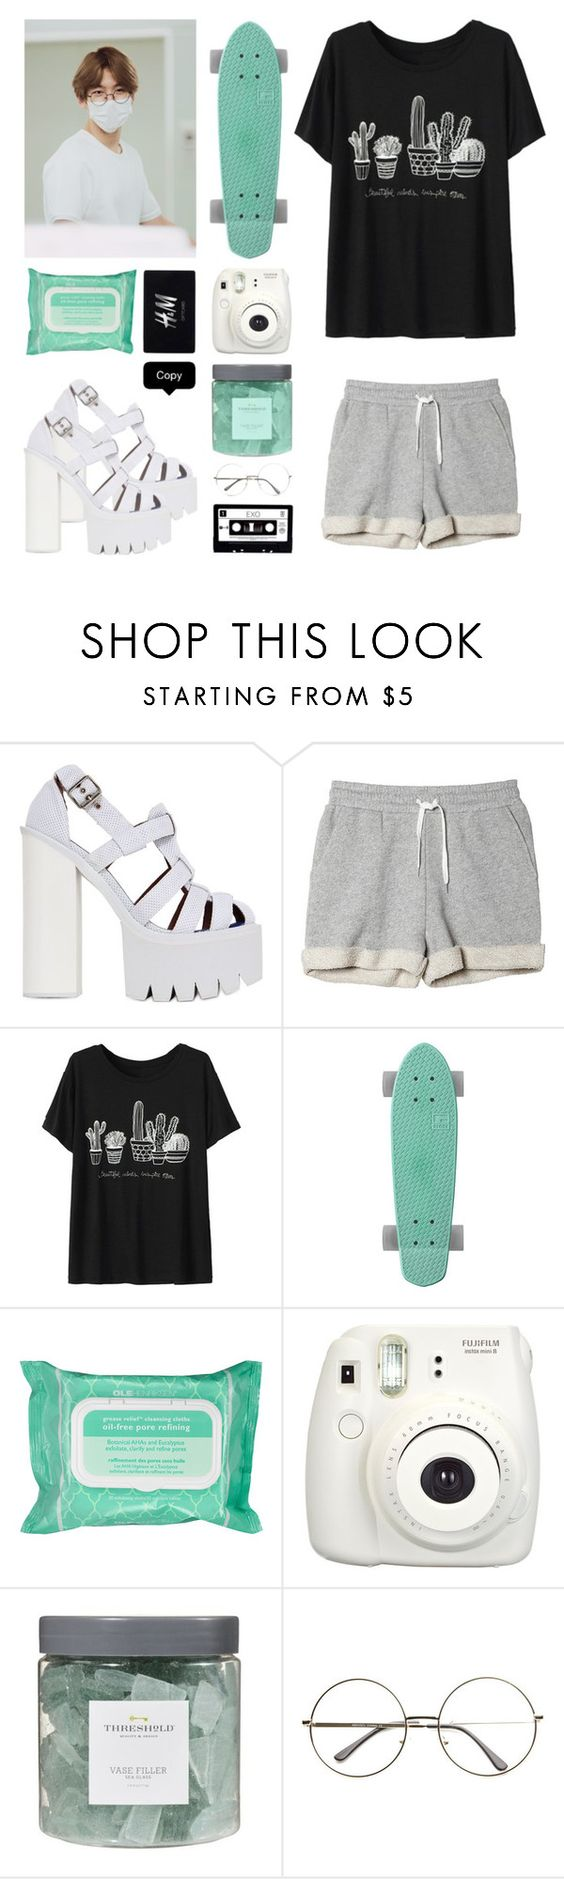 """""""love me right"""" by fxckkparadixe ❤ liked on Polyvore featuring мода, Jeffrey Campbell, Monki, Ole Henriksen, H&M и Threshold"""